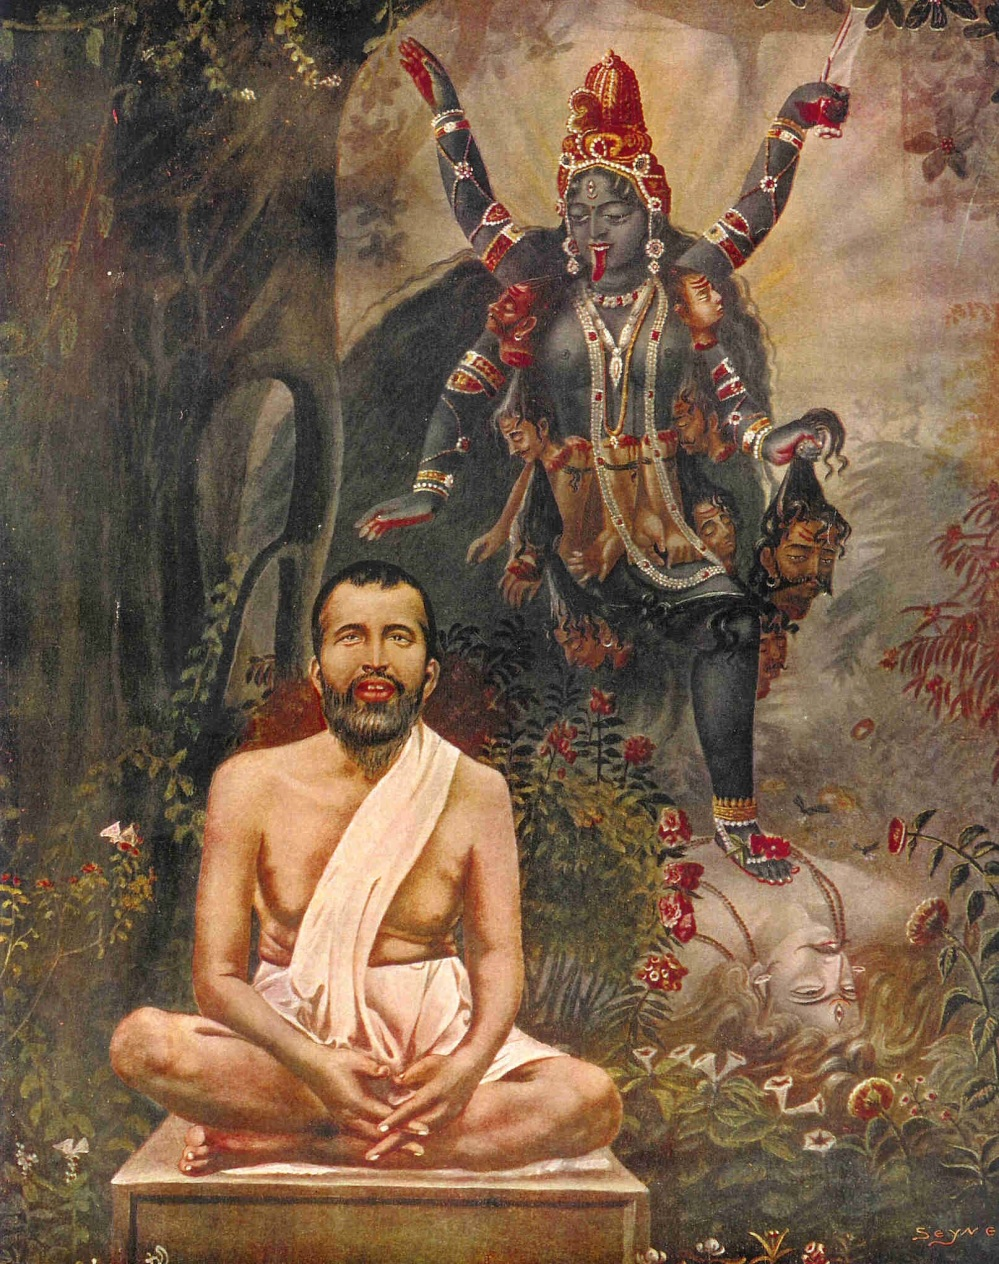 03-Kali-and-Ramakrishna.jpg